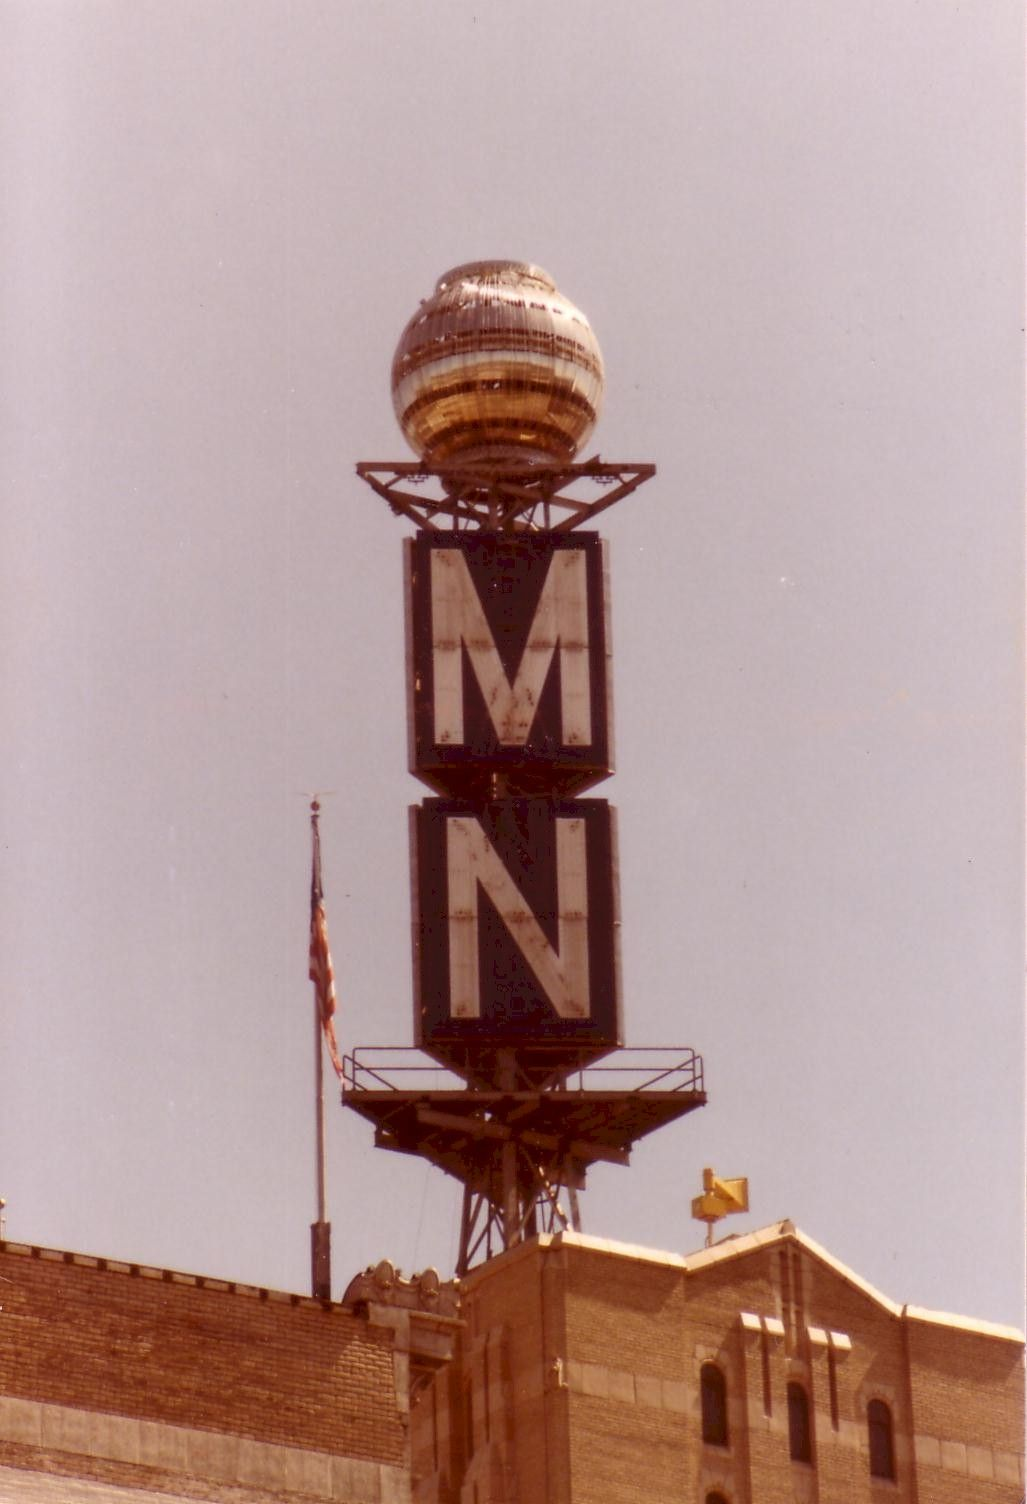 The Weather Ball, perched atop the Michigan National Bank